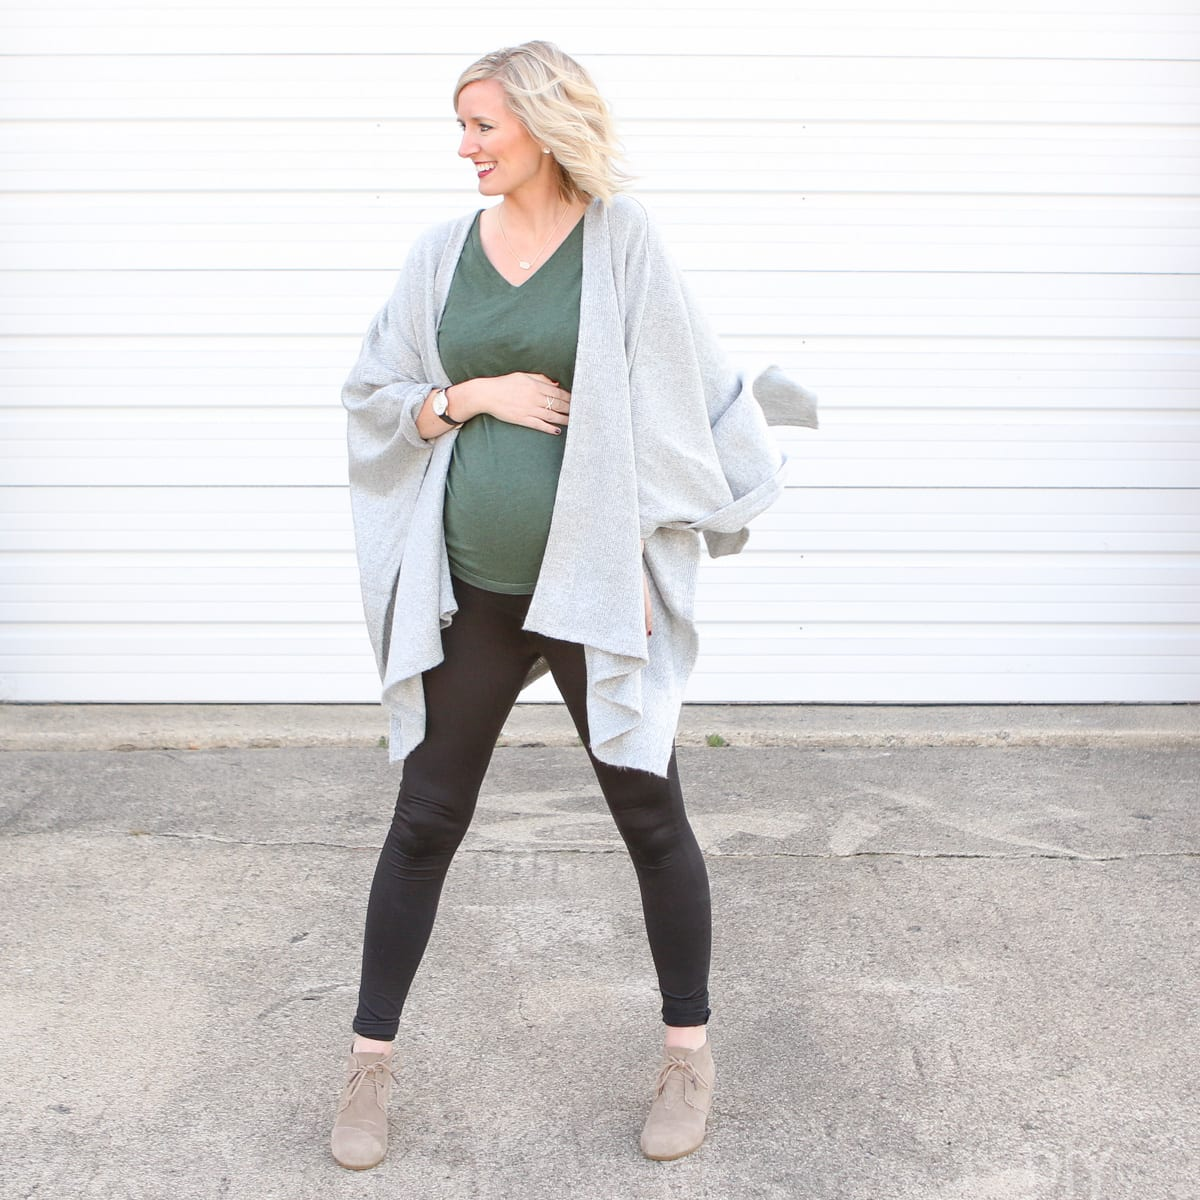 This casual, easy maternity wear is also super cute and comfy for Thanksgiving